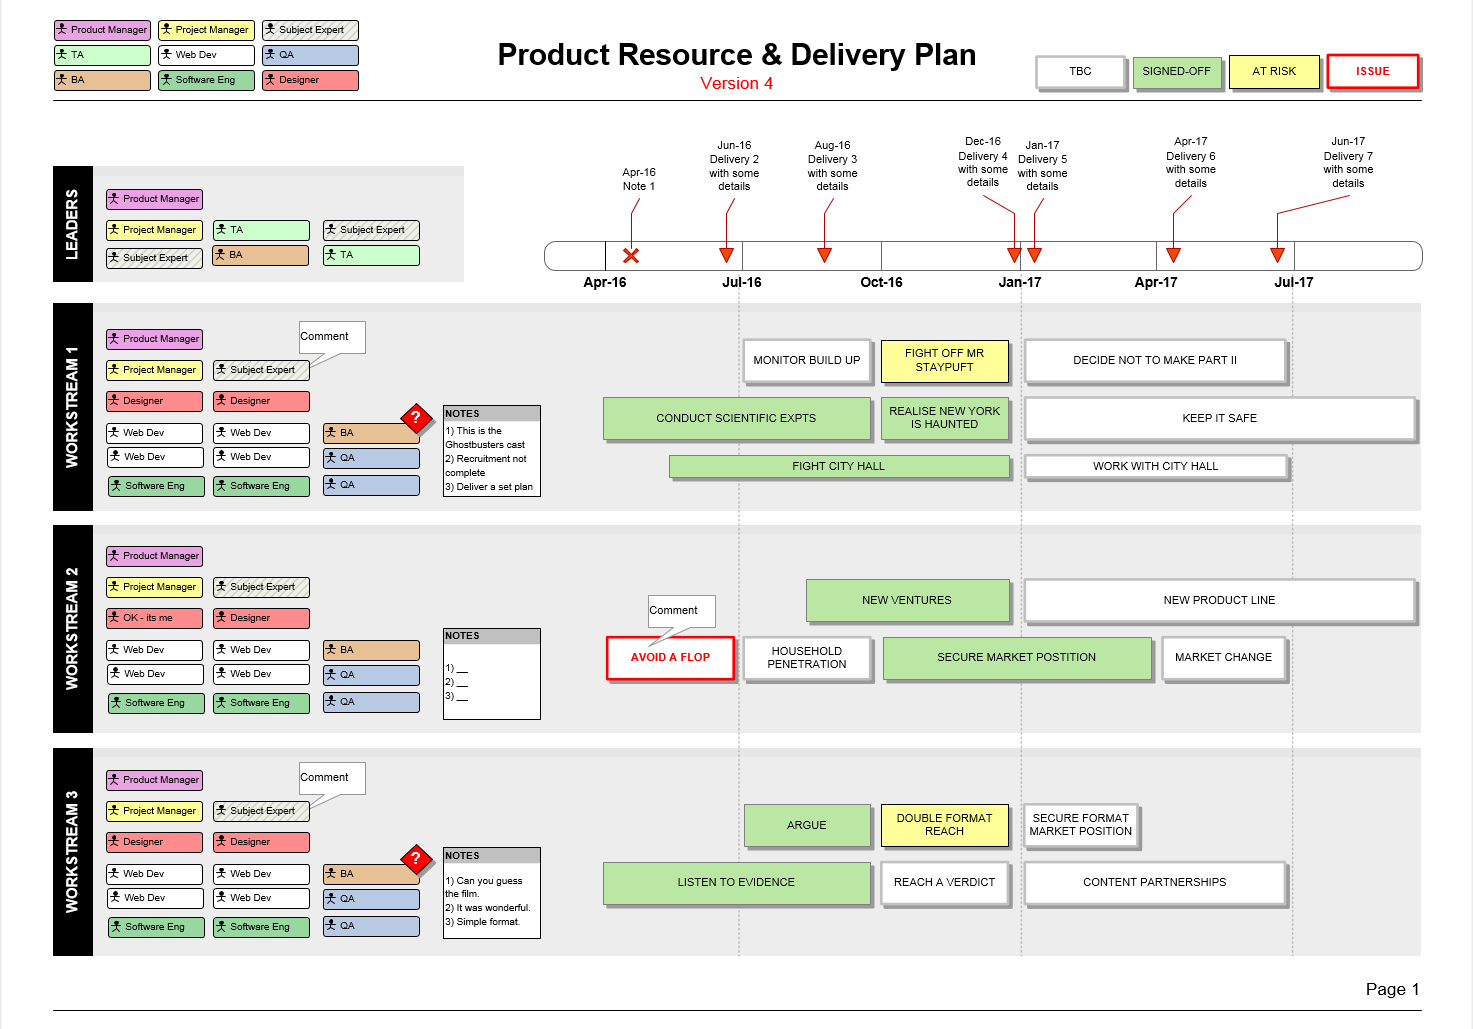 Resource Planning Spreadsheet Template In Product Resource Delivery Plan: Teams, Roles  Timeline